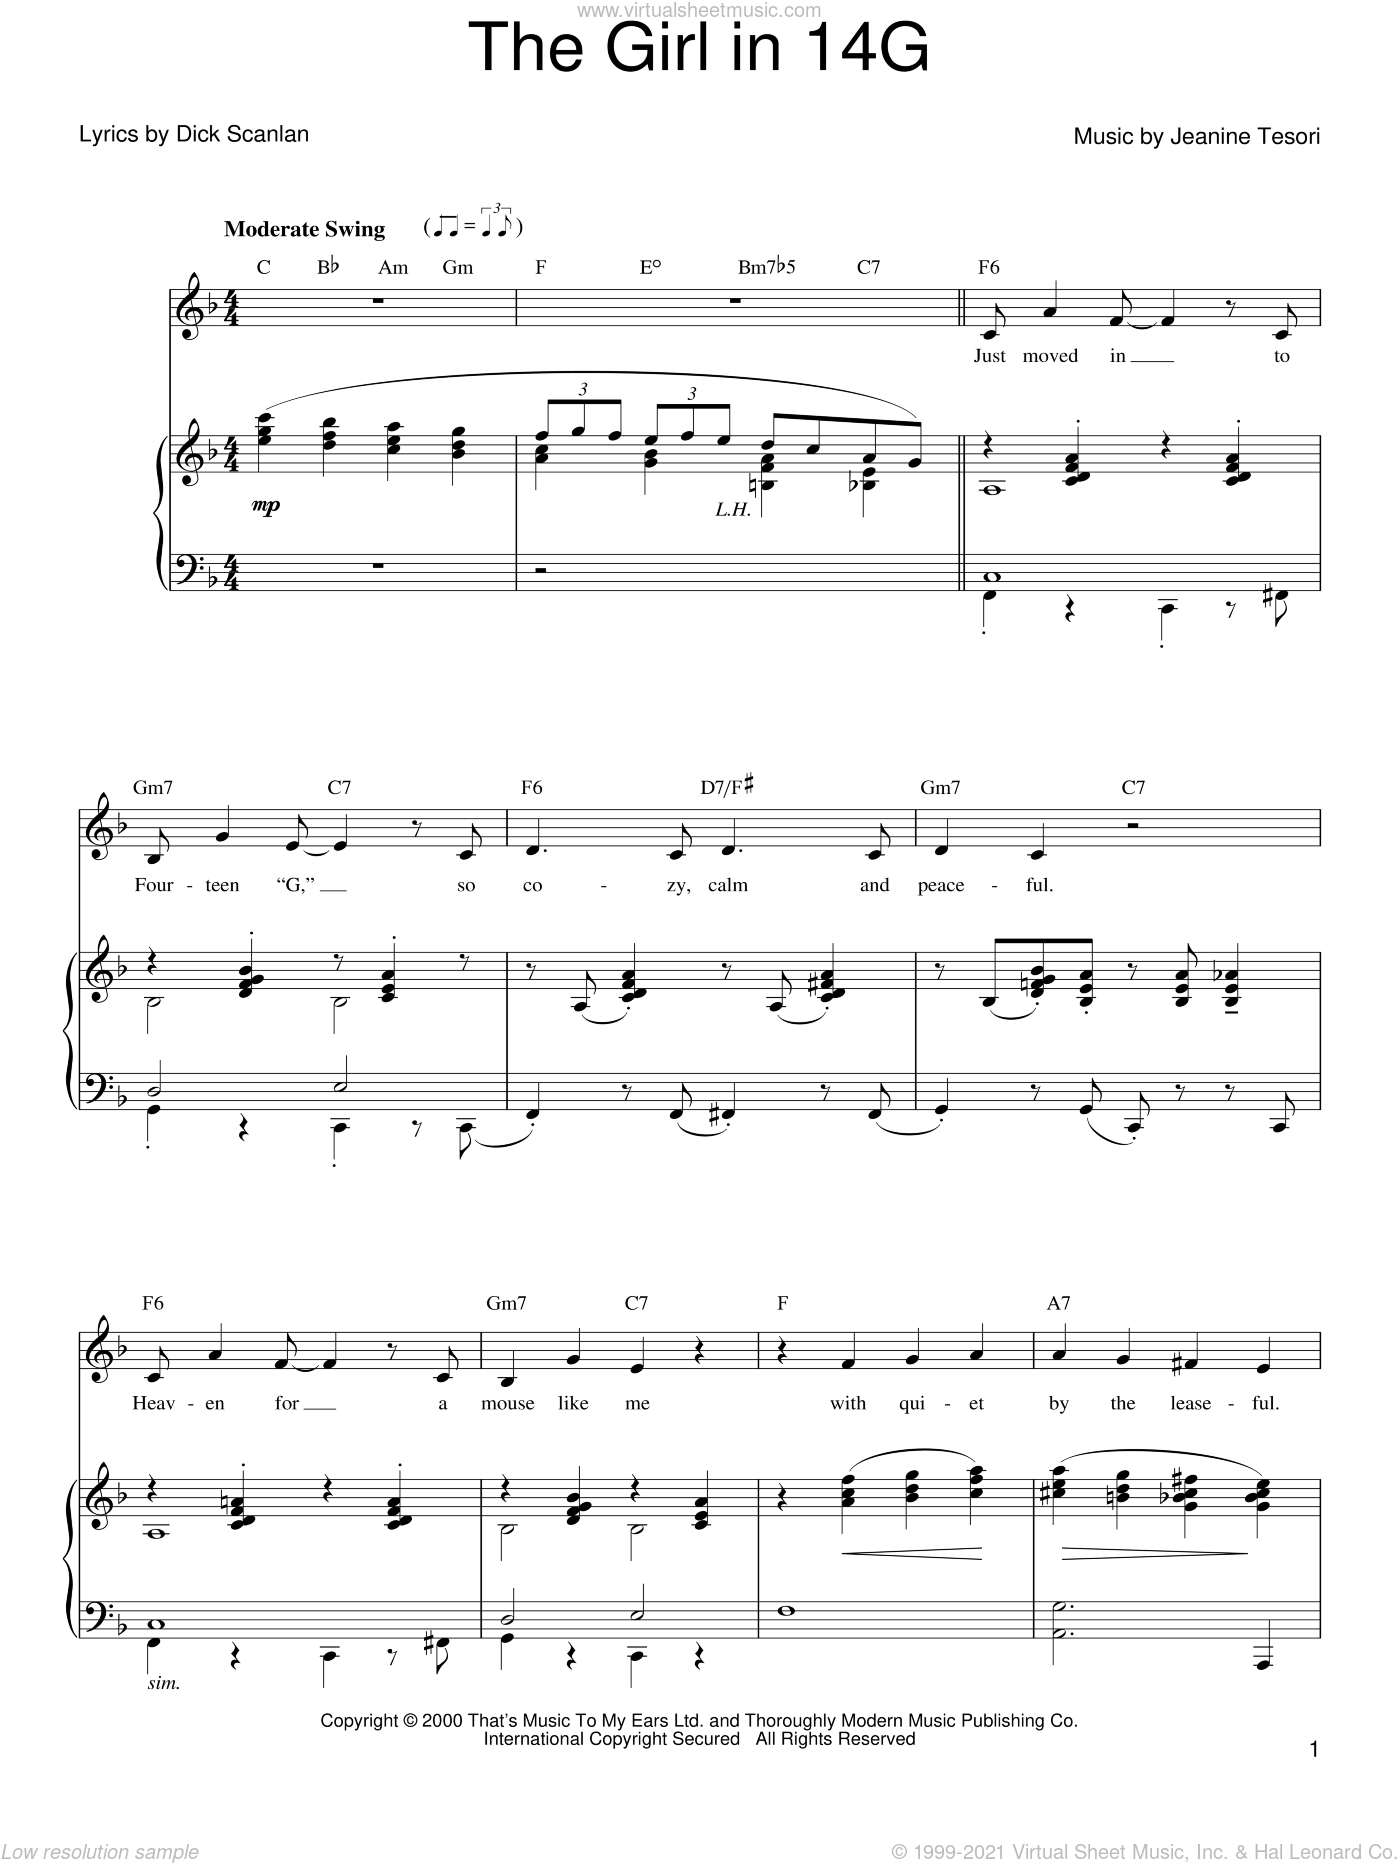 The Girl In 14G sheet music for voice, piano or guitar by Kristin Chenoweth, Dick Scanlan and Jeanine Tesori, intermediate skill level